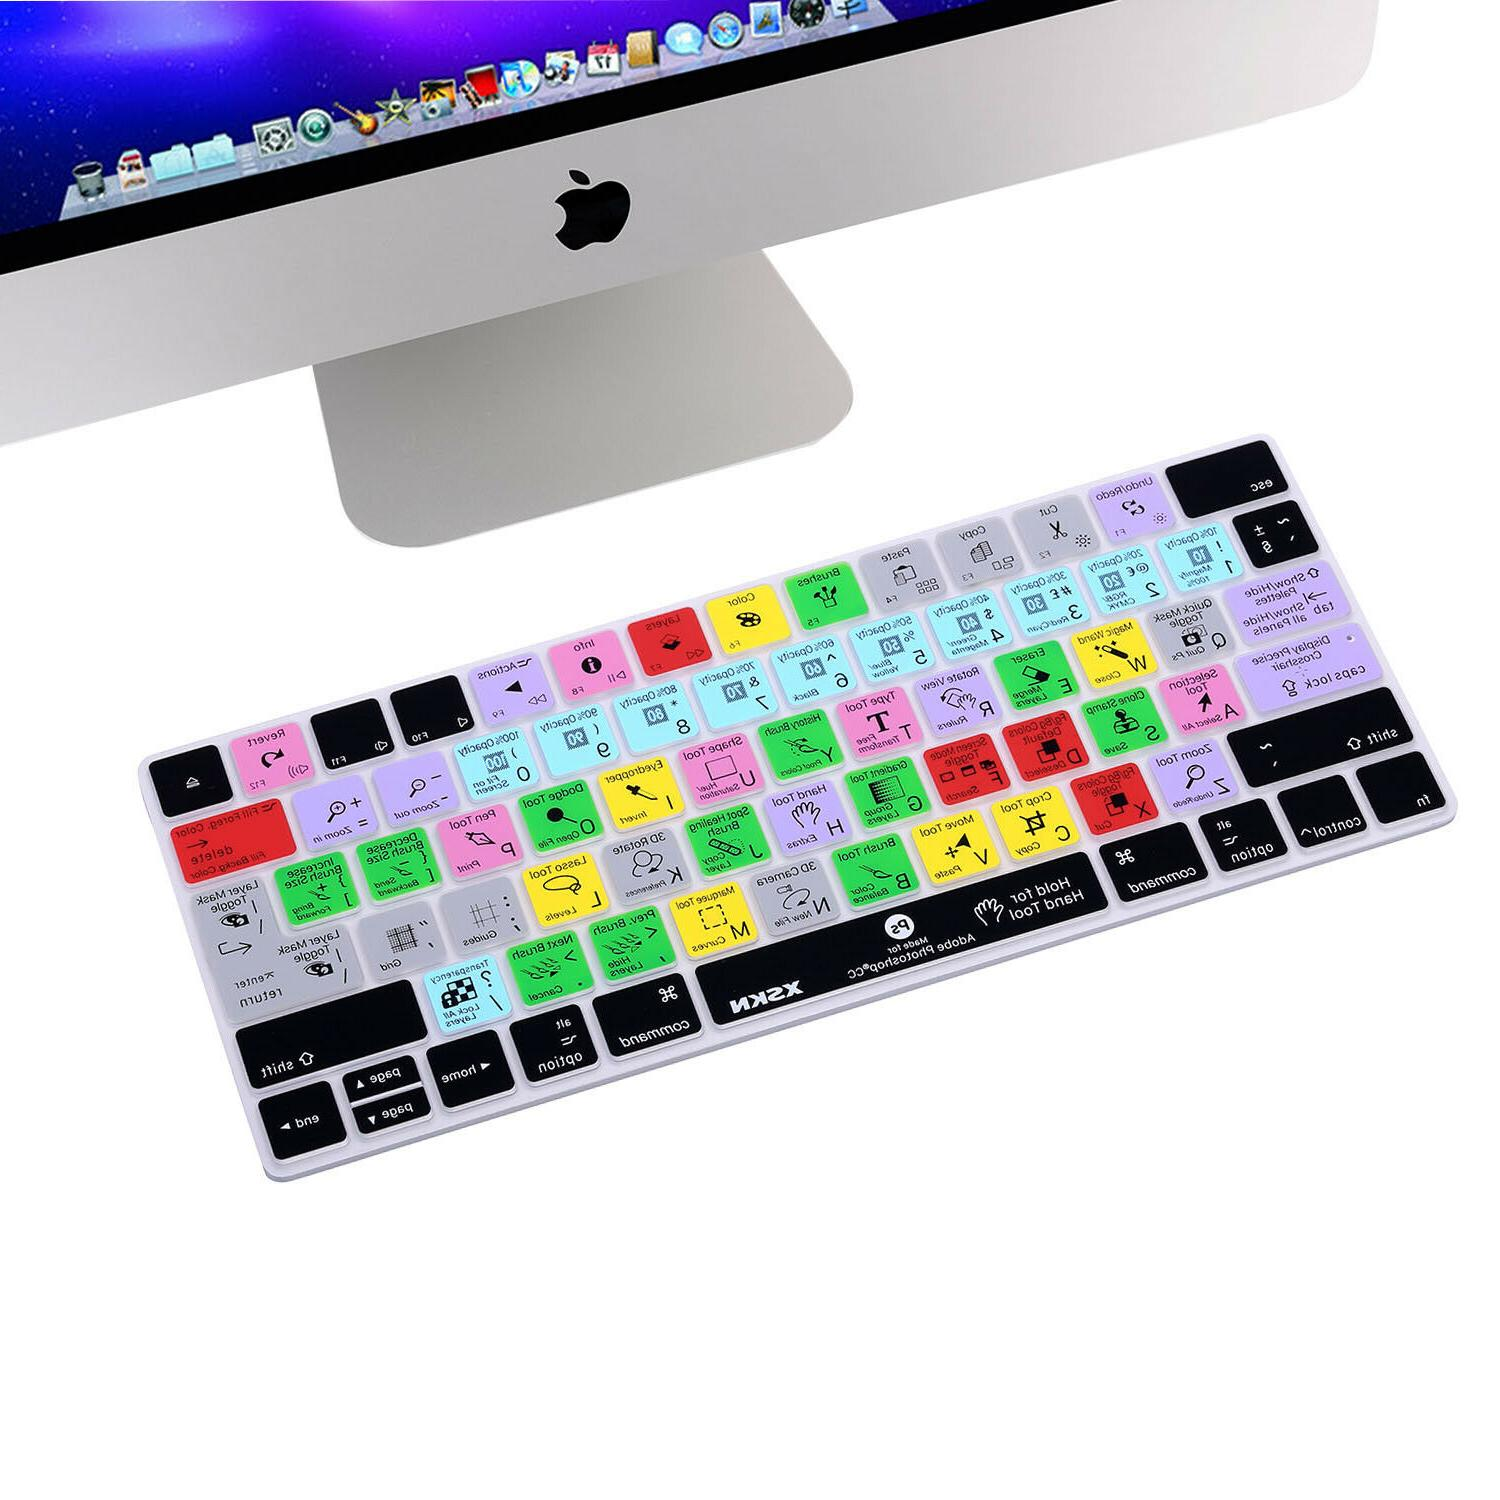 photoshop cc shortcut keyboard cover for apple